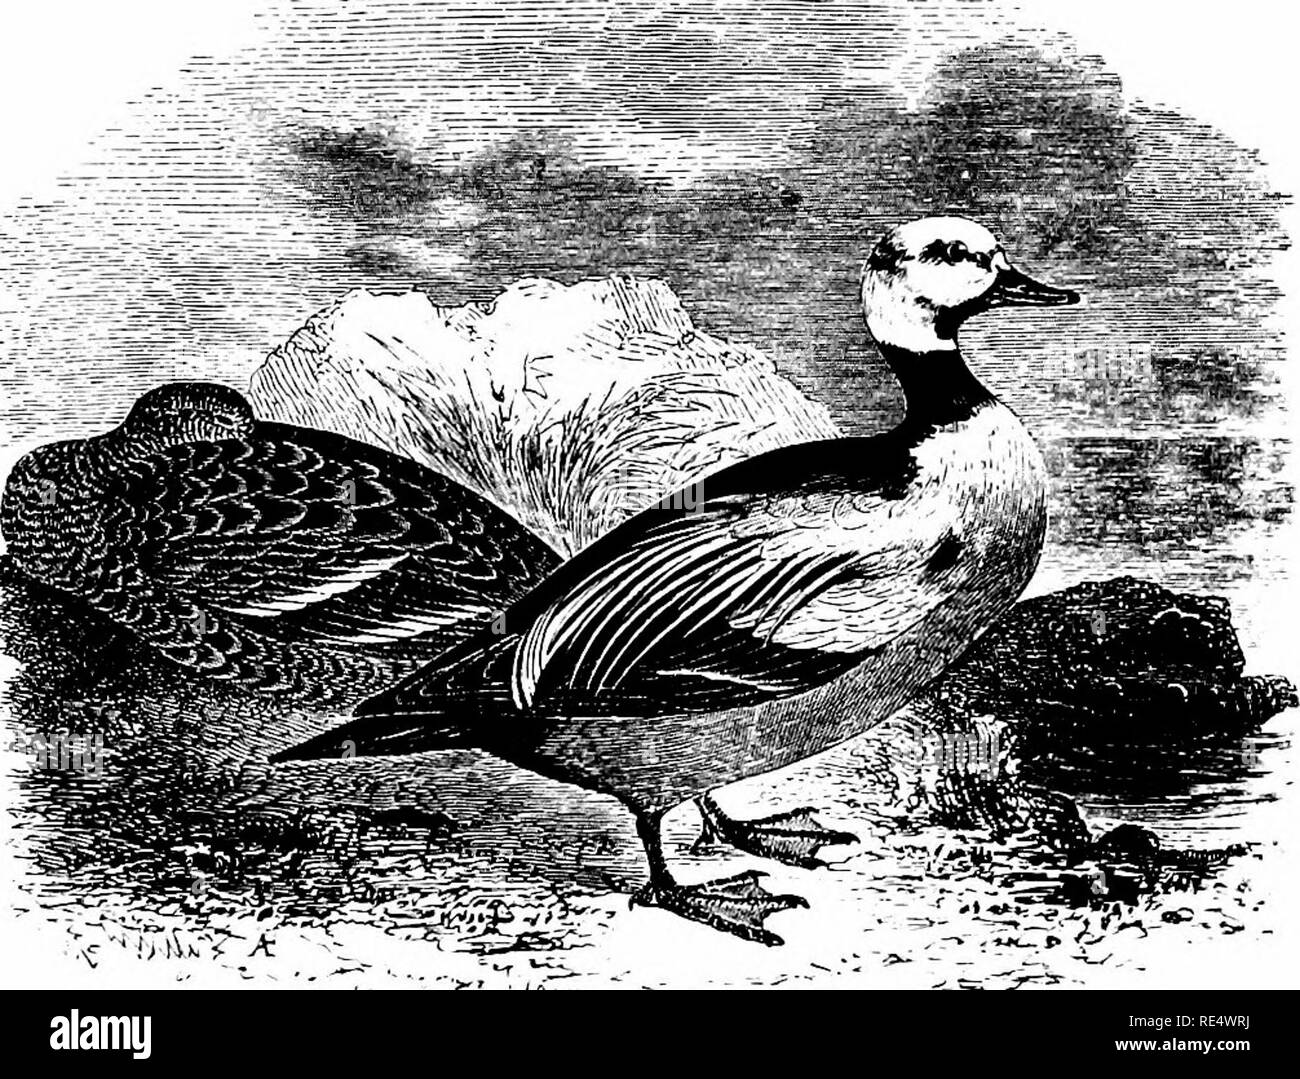 . An illustrated manual of British birds. Birds. ANATIDjE. 463. STELLER'S EIDER. SOMATERIA ST^LLERI (Pallas). This Arctic species, formerly called Steller's Western Duck, occa- sionally wanders to the temperate portions of Europe in winter, and has twice occurred in England. The first example, a male in nearly adult plumage, was killed on February loth 1830, at Caistor in Norfolk, and having been afterwards presented to the Norwich Museum by the Rev. George Stewart, formed the subject of Yarrell's (and the present) illustration. The second was shot while sitting alone on the sea off Filey Brig - Stock Image